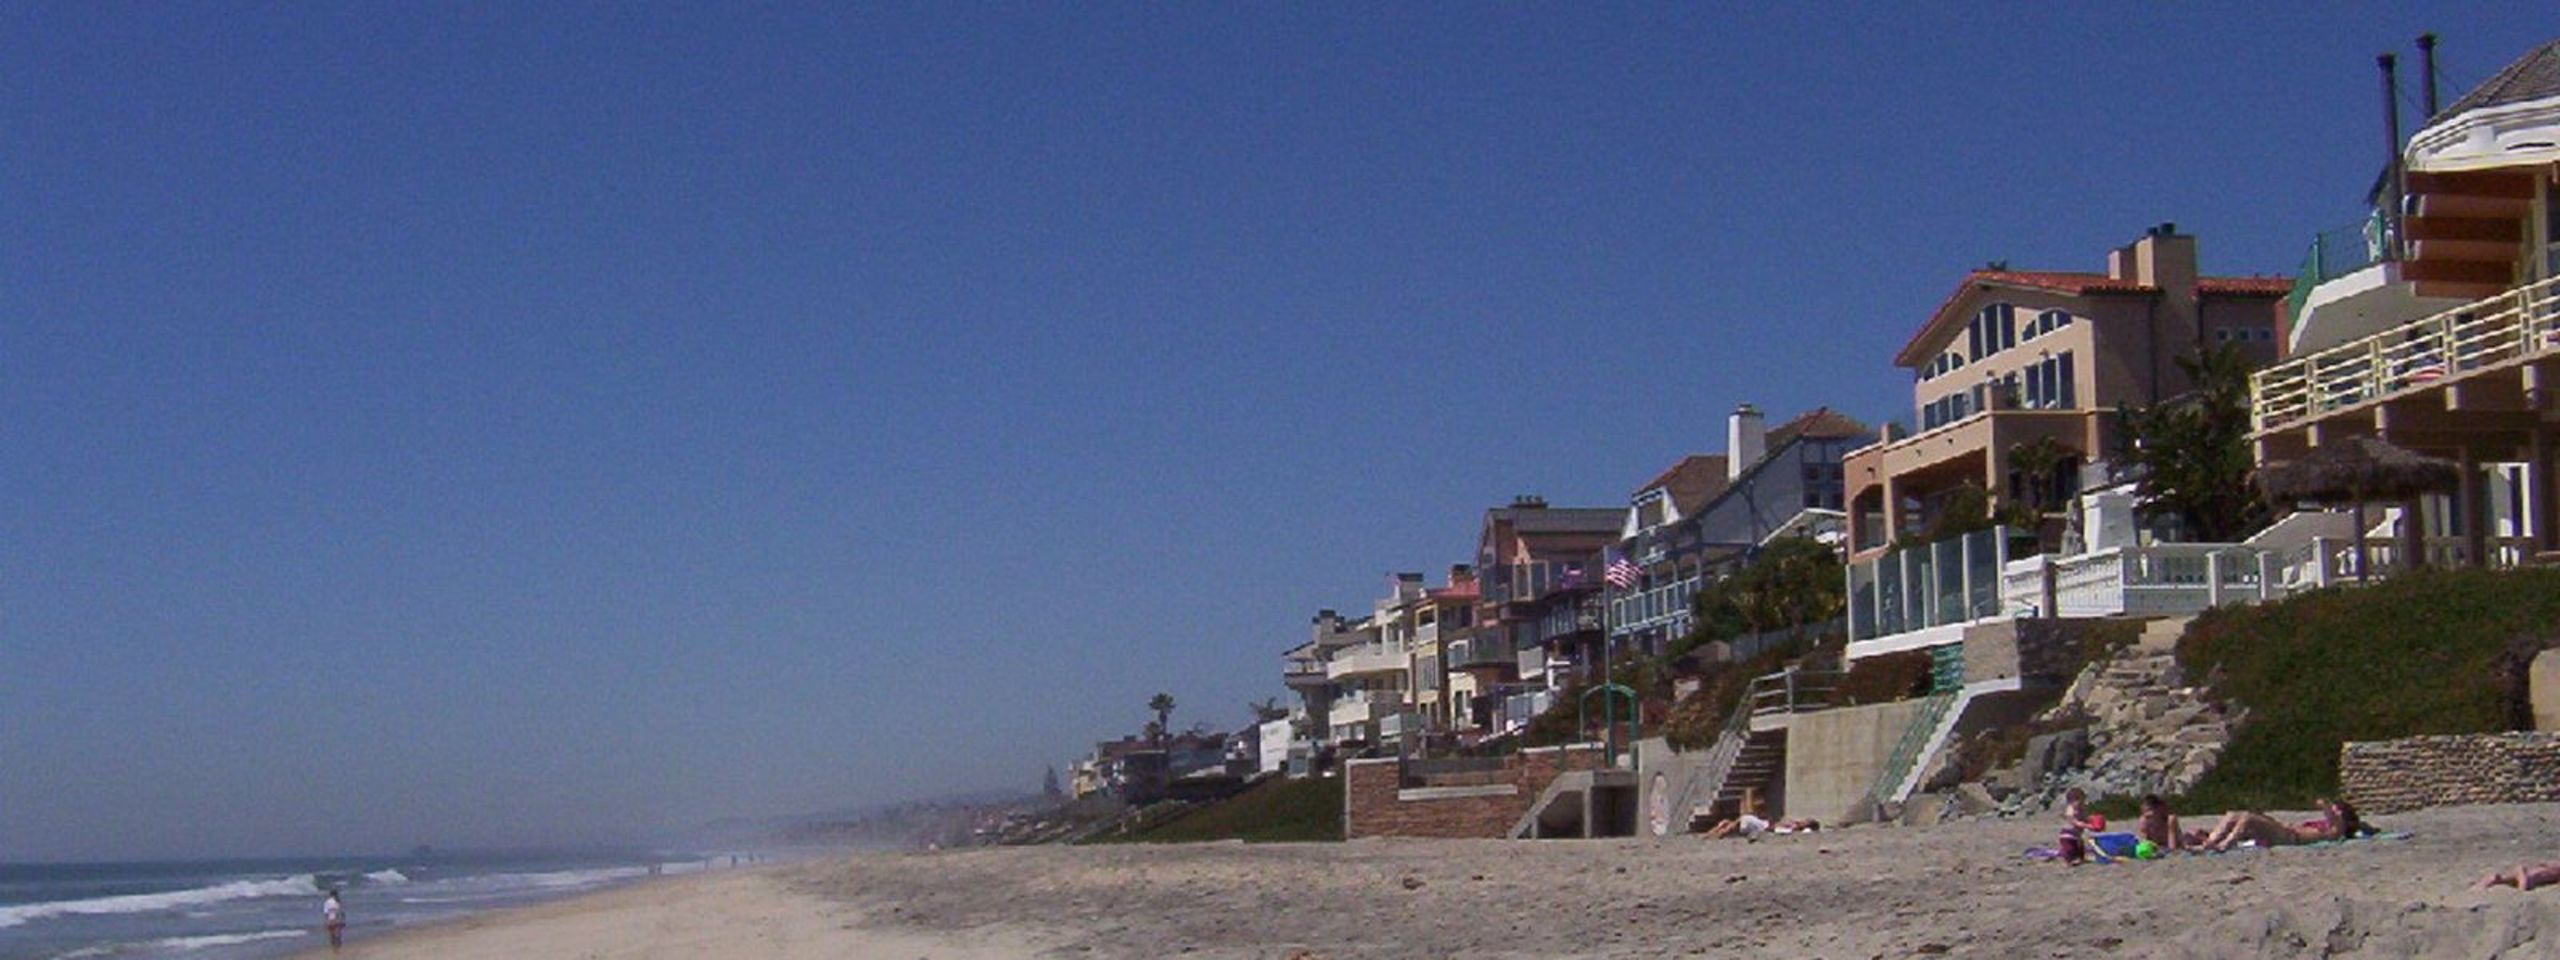 Carlsbad an all American beach town with plenty to offer...